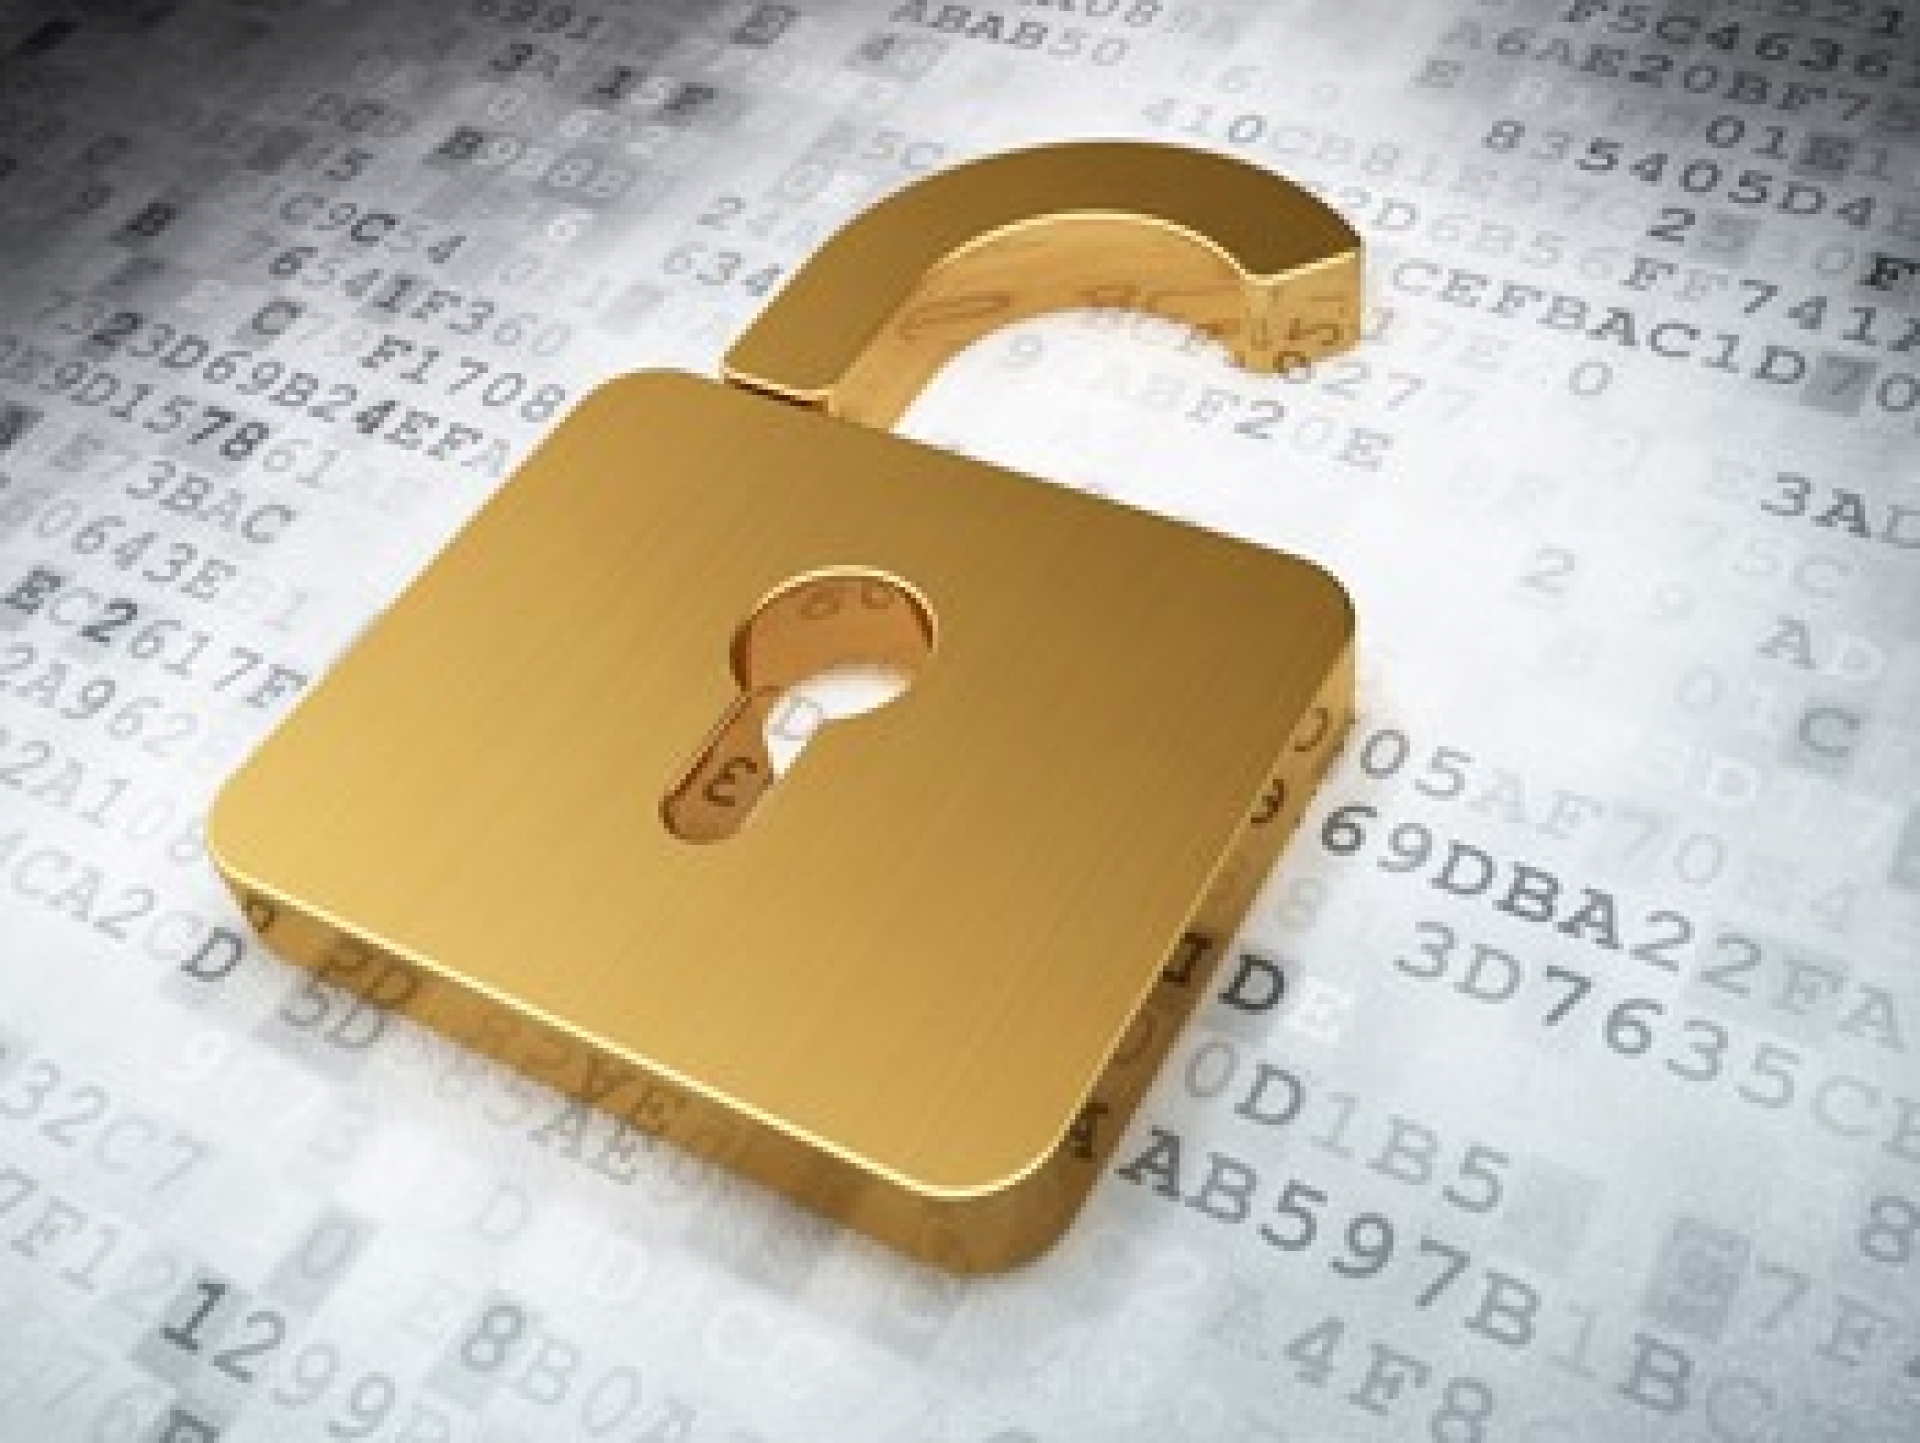 Data Breaches in Healthcare Industry to Increase in 2016